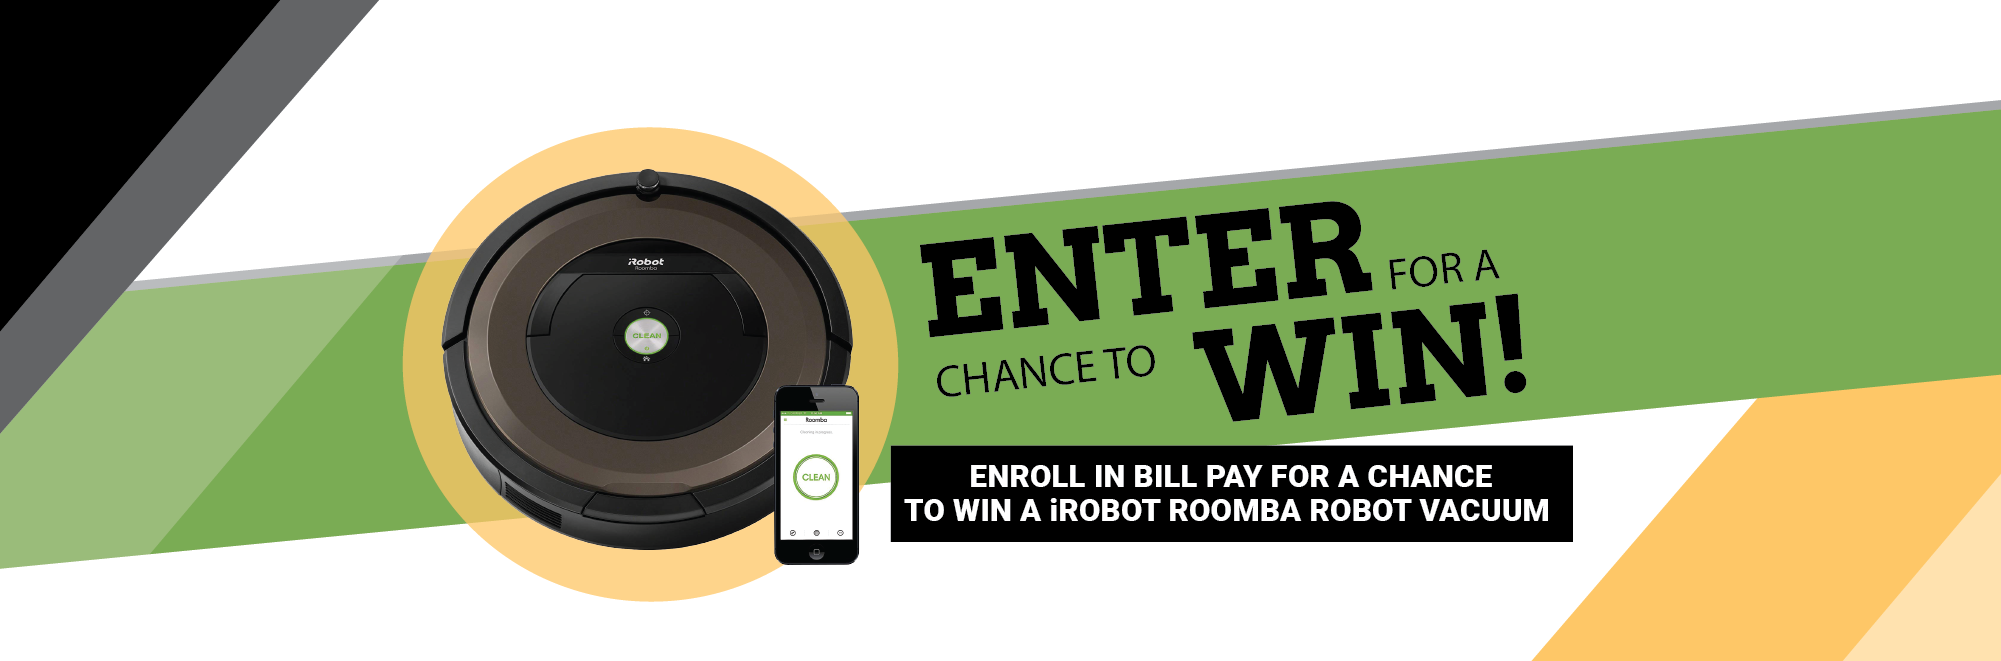 Enroll in bill pay for a chance to win a irobot roomba vacuum!